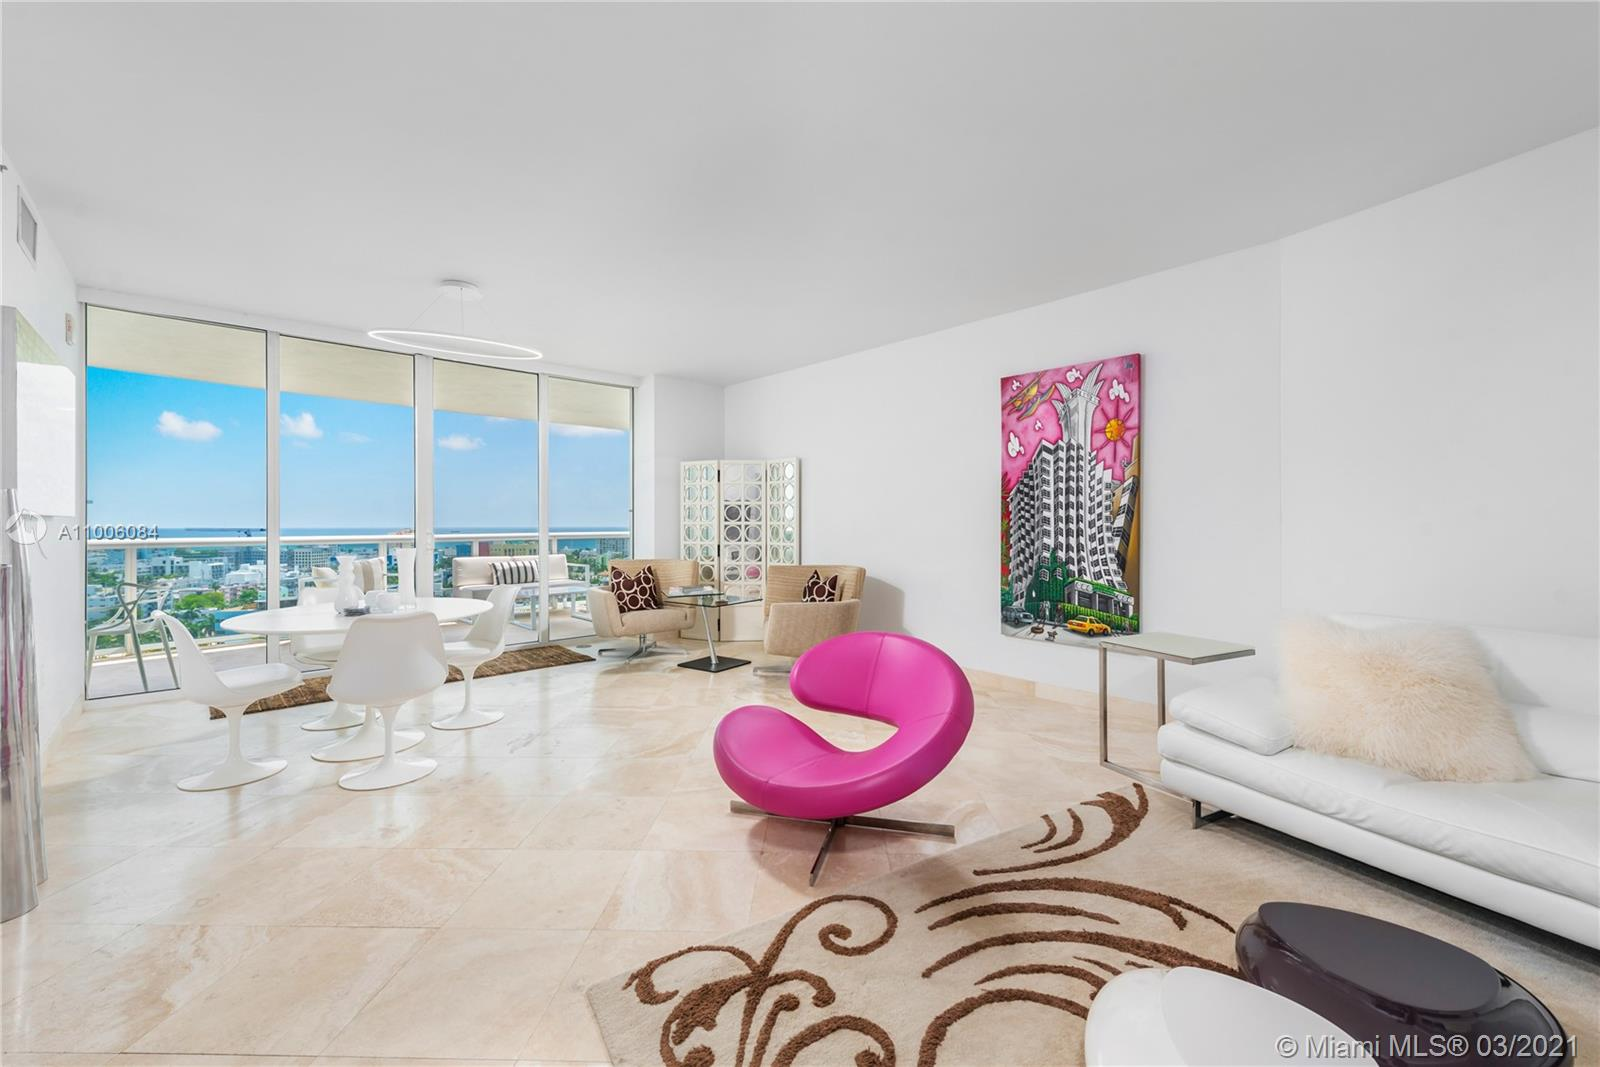 Airy 2/2 corner unit at Murano Grande in South Beach. Located in the South of Fifth neighborhood, #1711 enjoys one of the better floorplans in the building with a sizable balcony off the master bedroom and a generous balcony with views of the Ocean for everyone to appreciate. This is one of very few lines with private balconies with no neighbors looking in. Travertine floors throughout the 1649 square feet that allows for two very large bedrooms with their own space and beautiful views. Furniture is negotiable. Murano Grande is a benchmark for the area and has tennis courts, gym, cafe, and a great pool area. Easy to show.